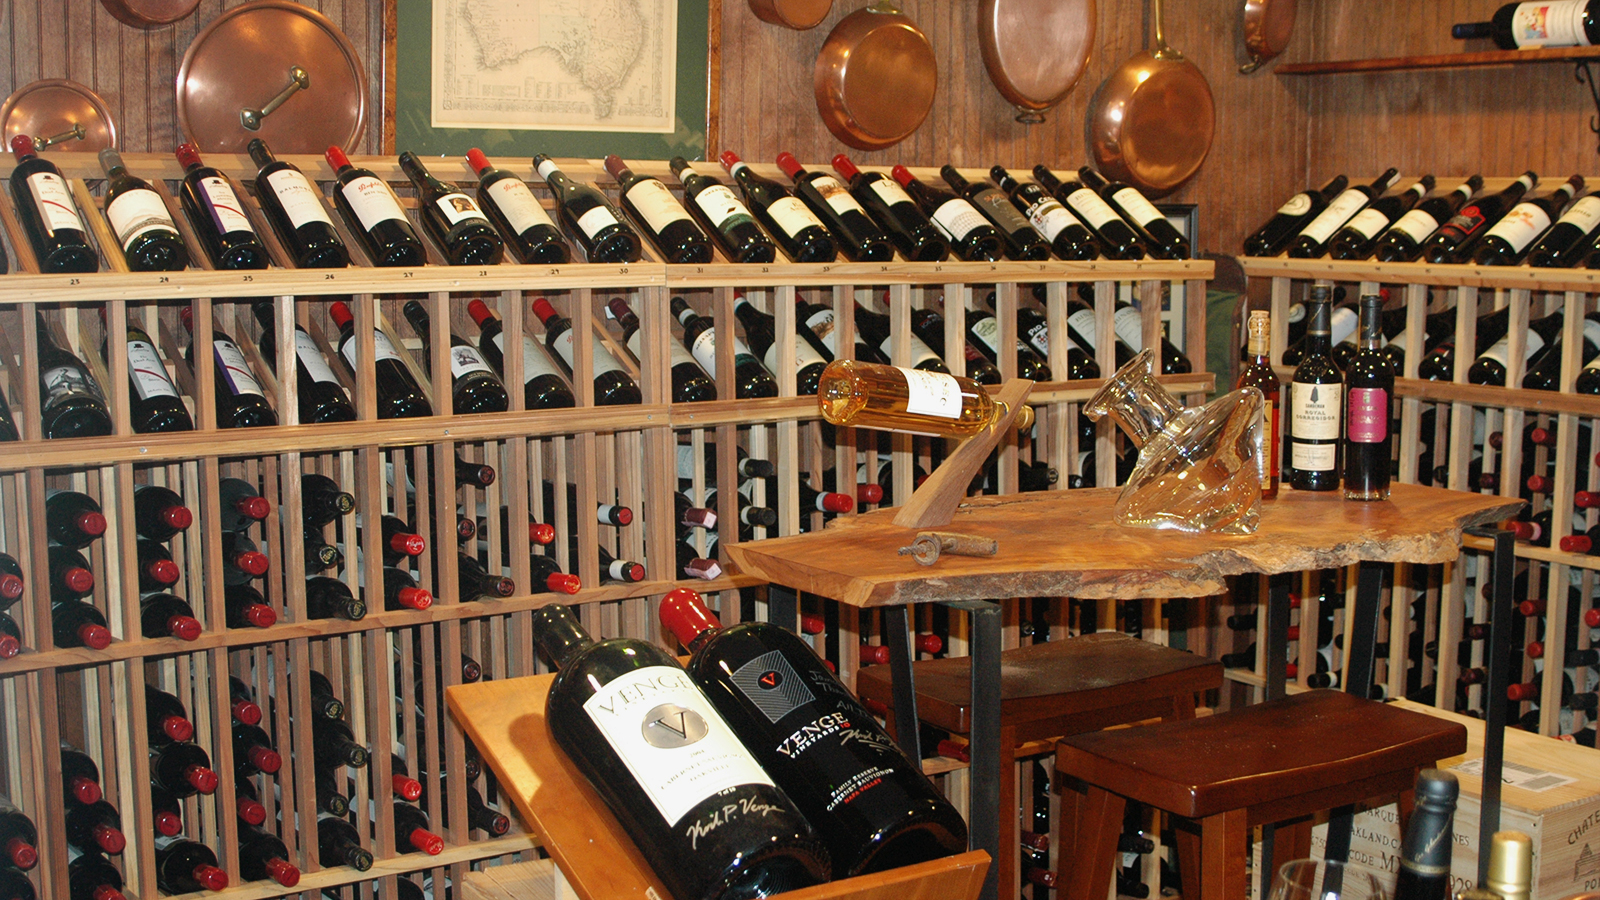 A Well Traveled Wine Cellar Private Cellars Collecting & Personal Wine Cellar - Natashamillerweb